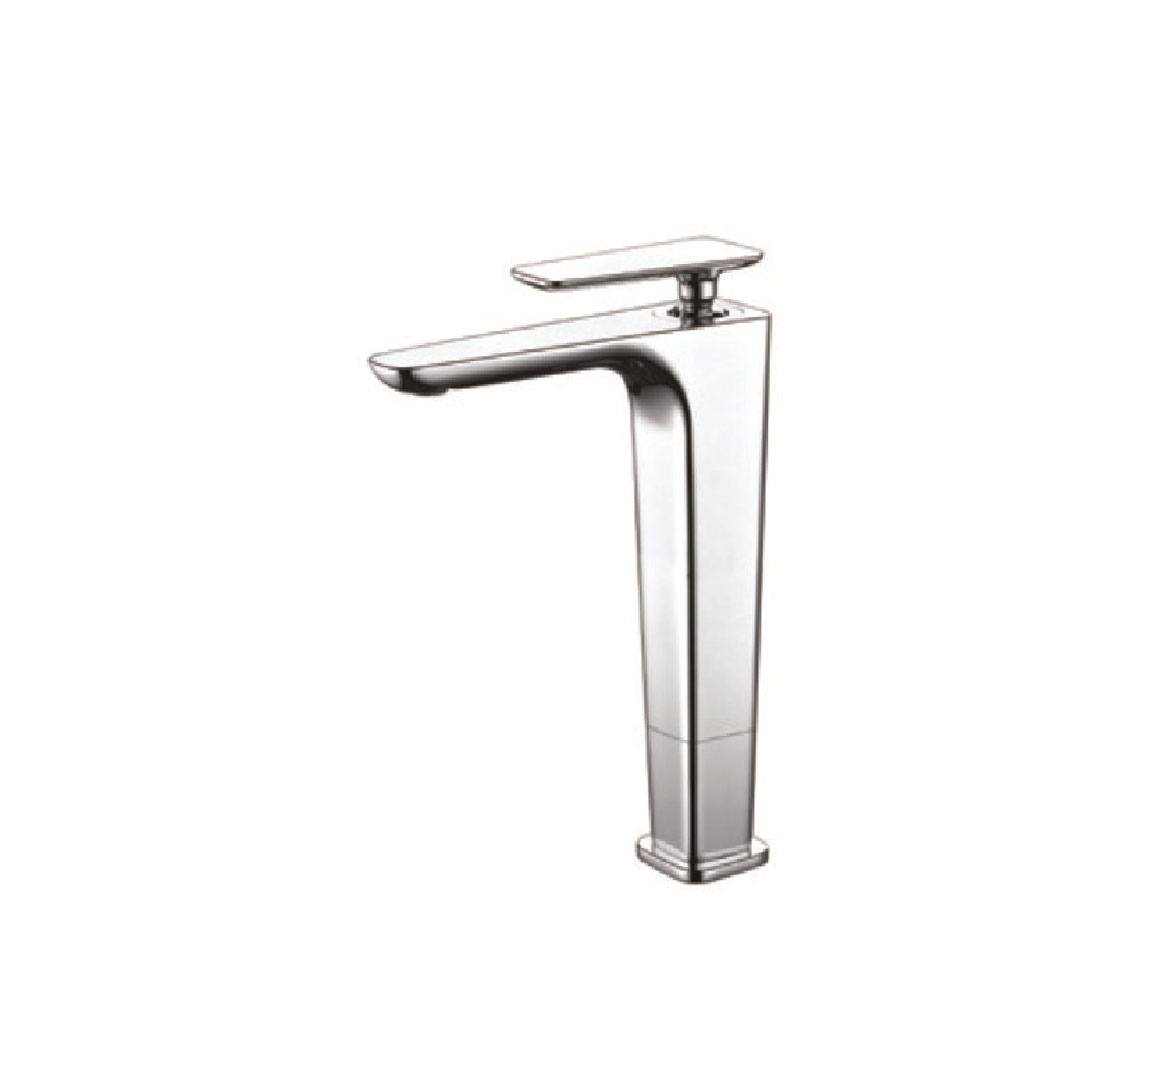 OBED CF-44352 Waterfall Faucet